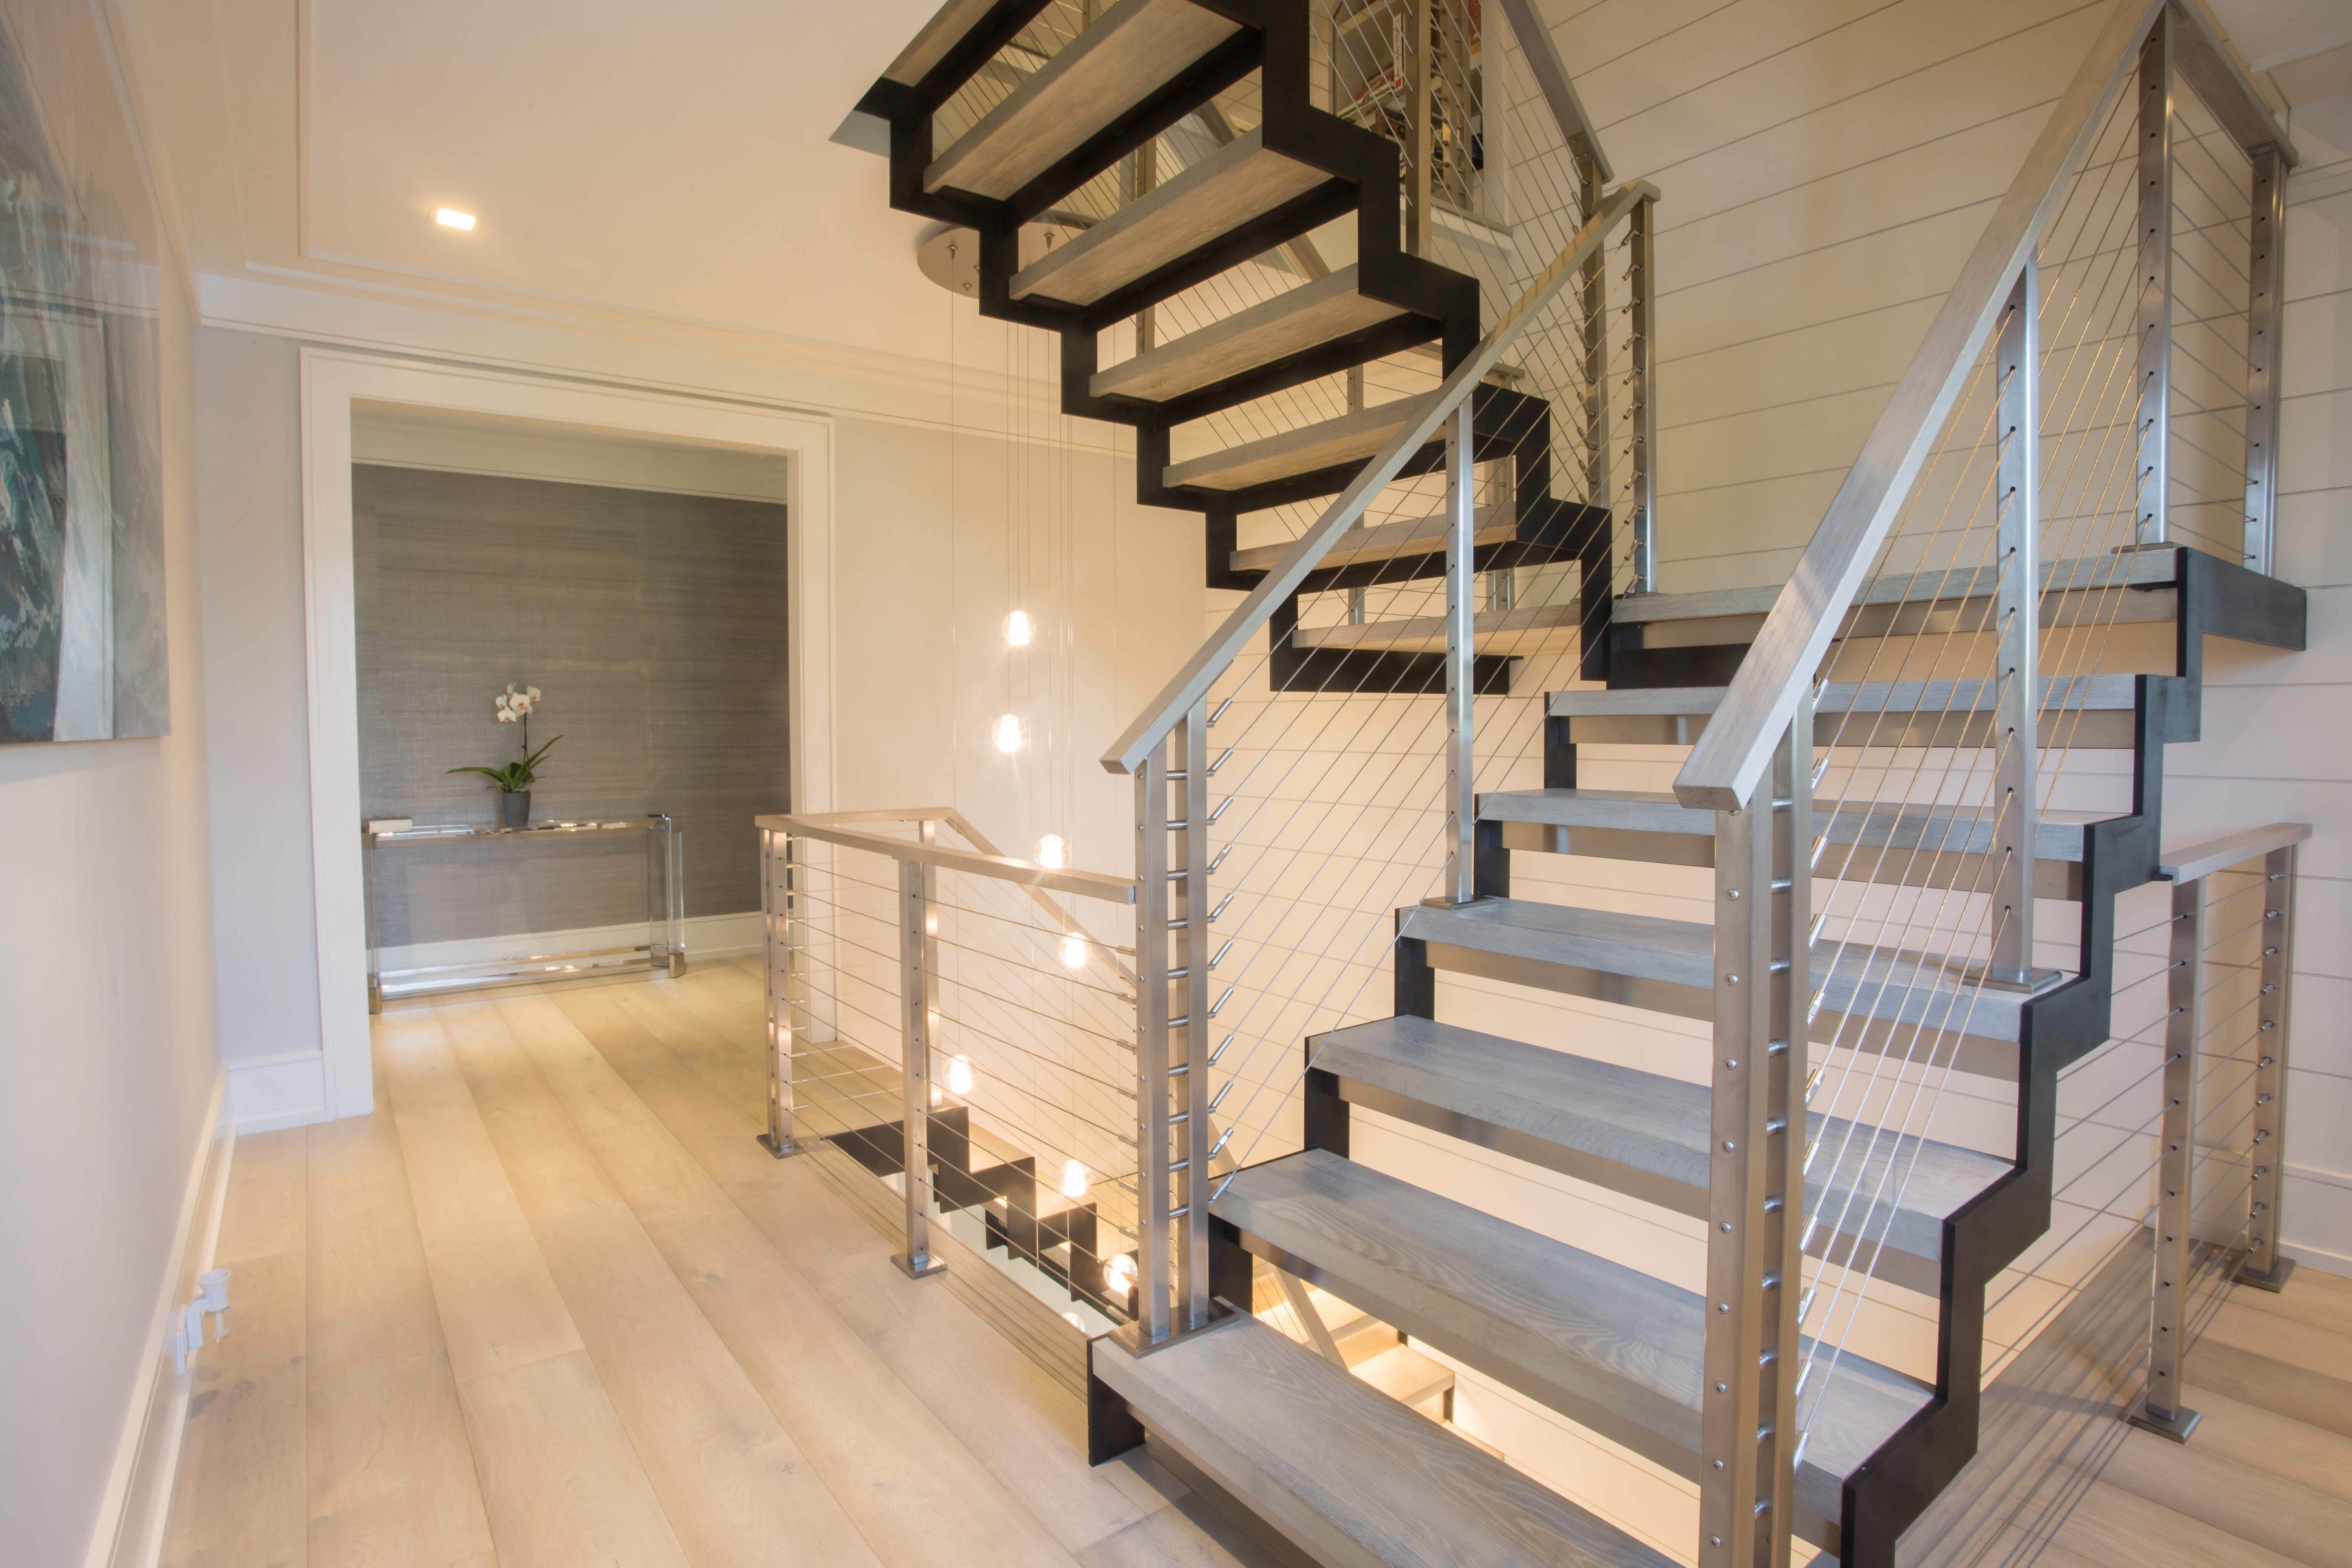 Modern Stairs With Stainless Railing Greenwich Ct Keuka Studios | Modern Stainless Steel Staircase Railing | Modular Steel | Hand | Crystal Handrail | Contemporary | Exterior